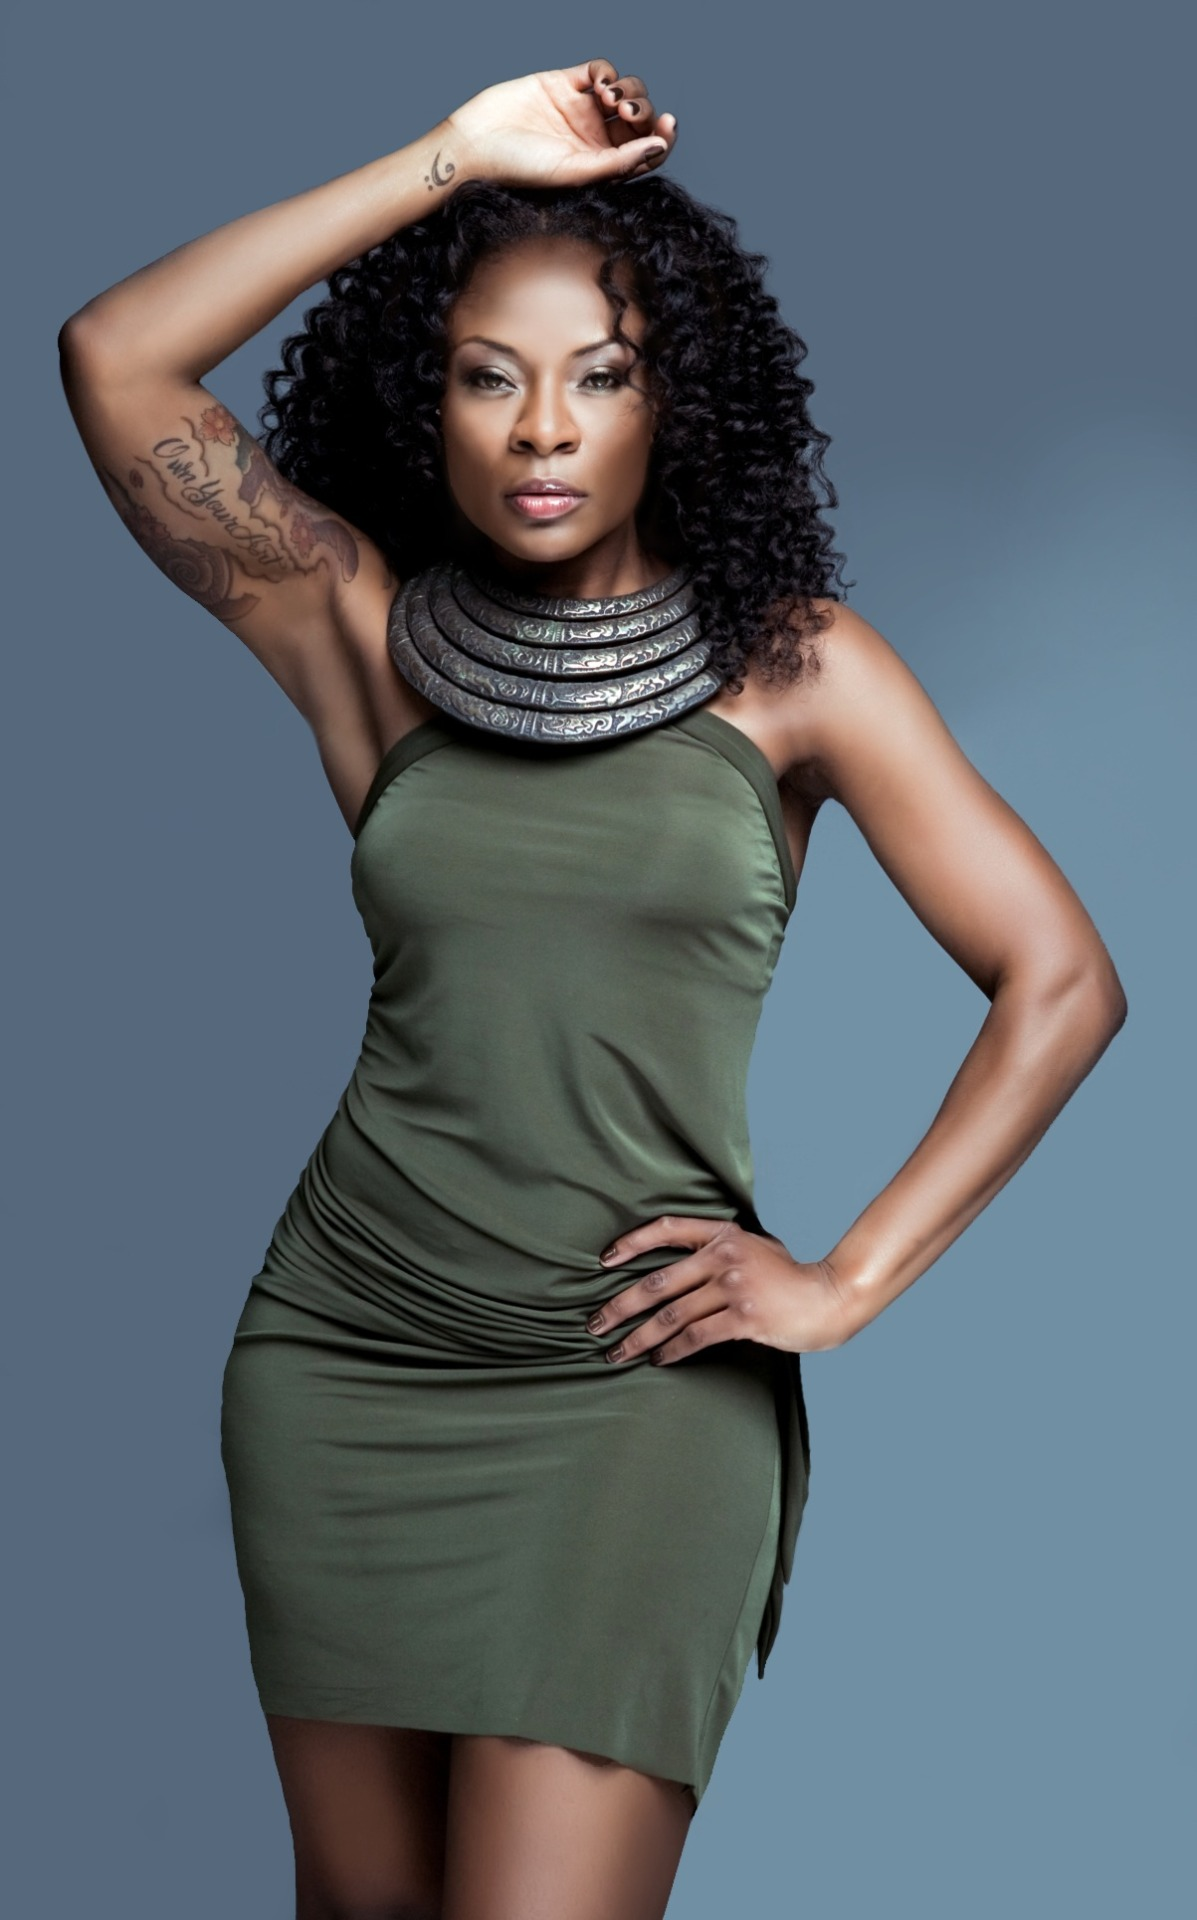 Jully Black pic for the day